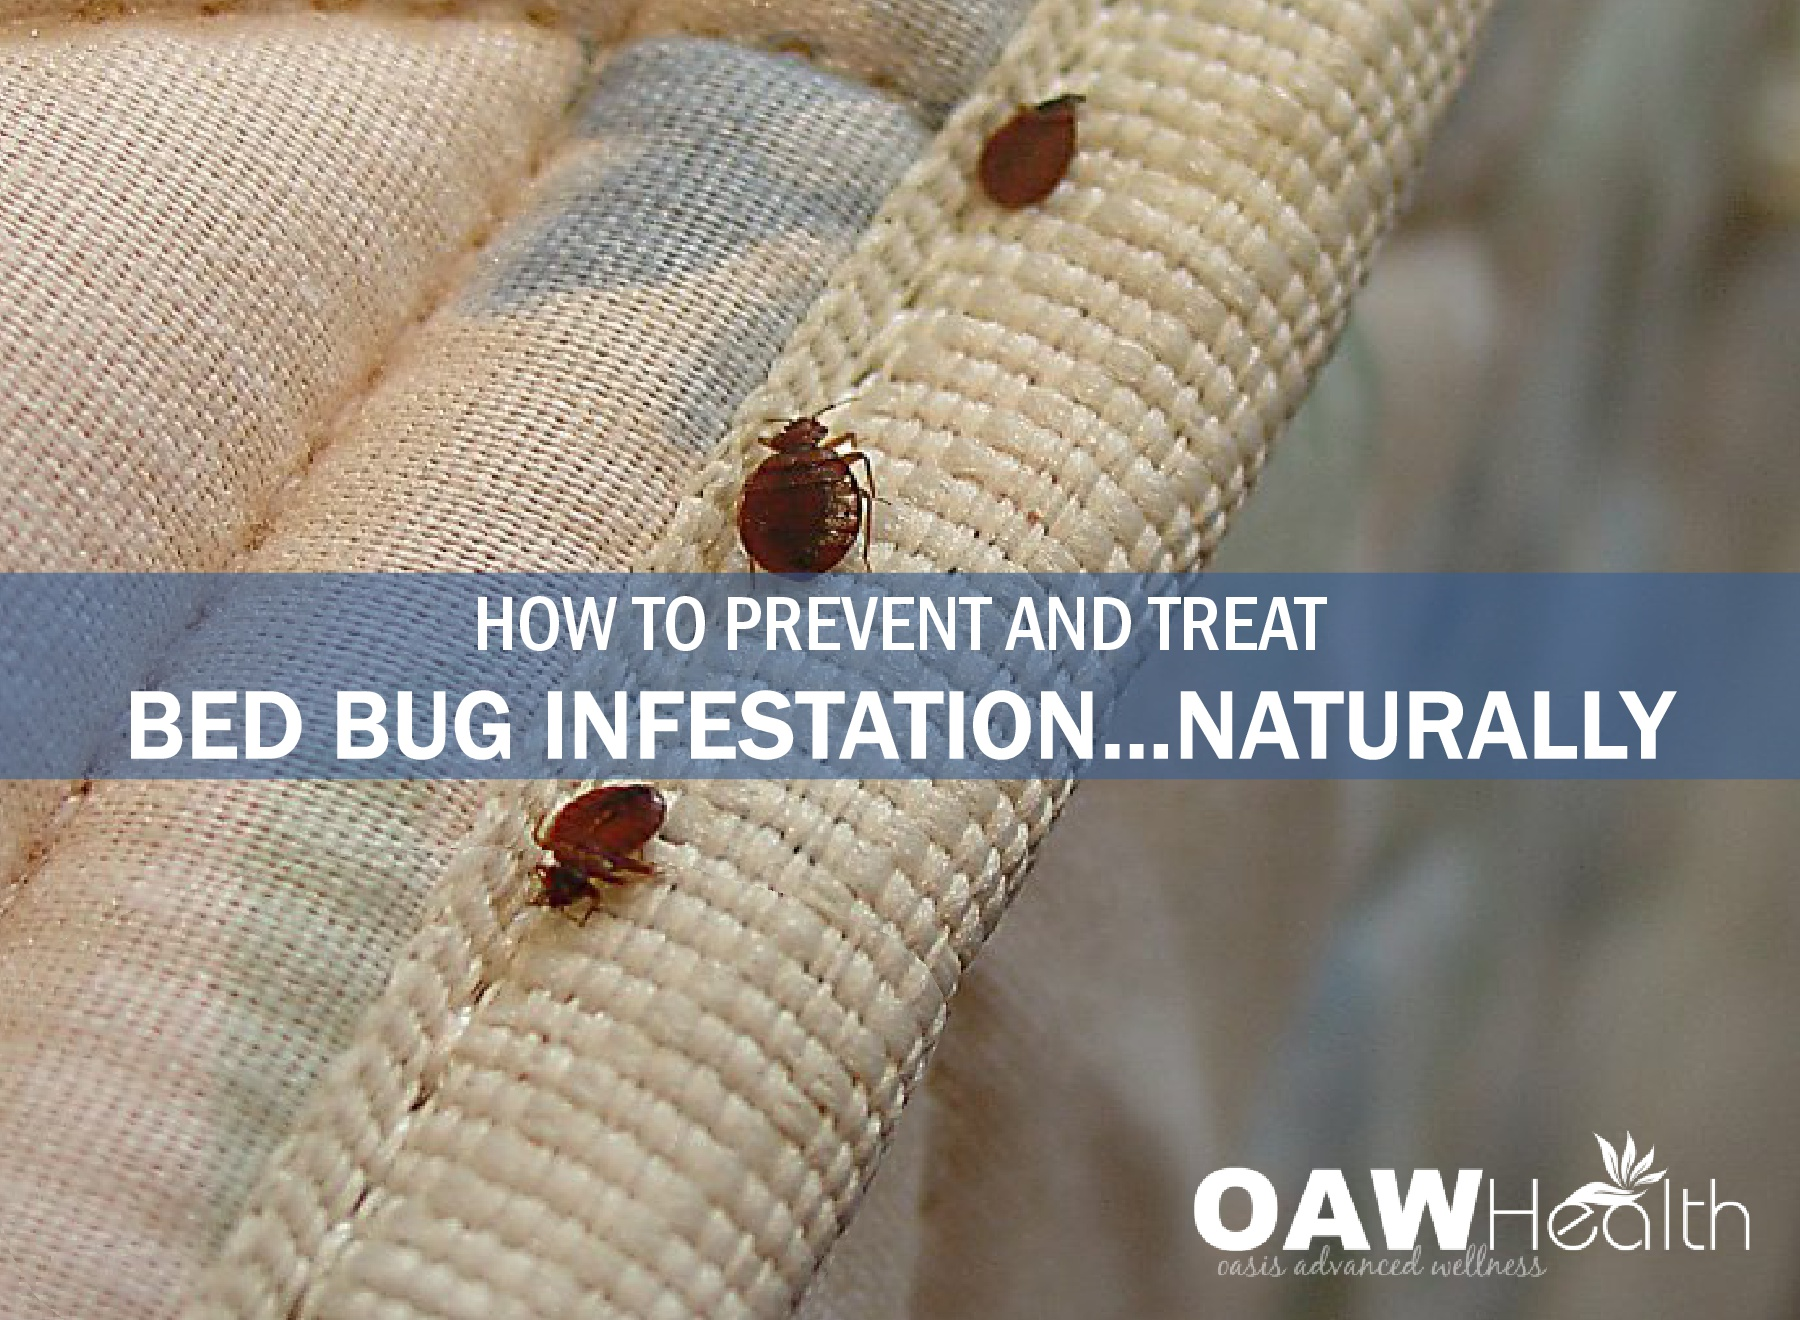 How to Prevent and Treat Bed Bug Infestation…Naturally